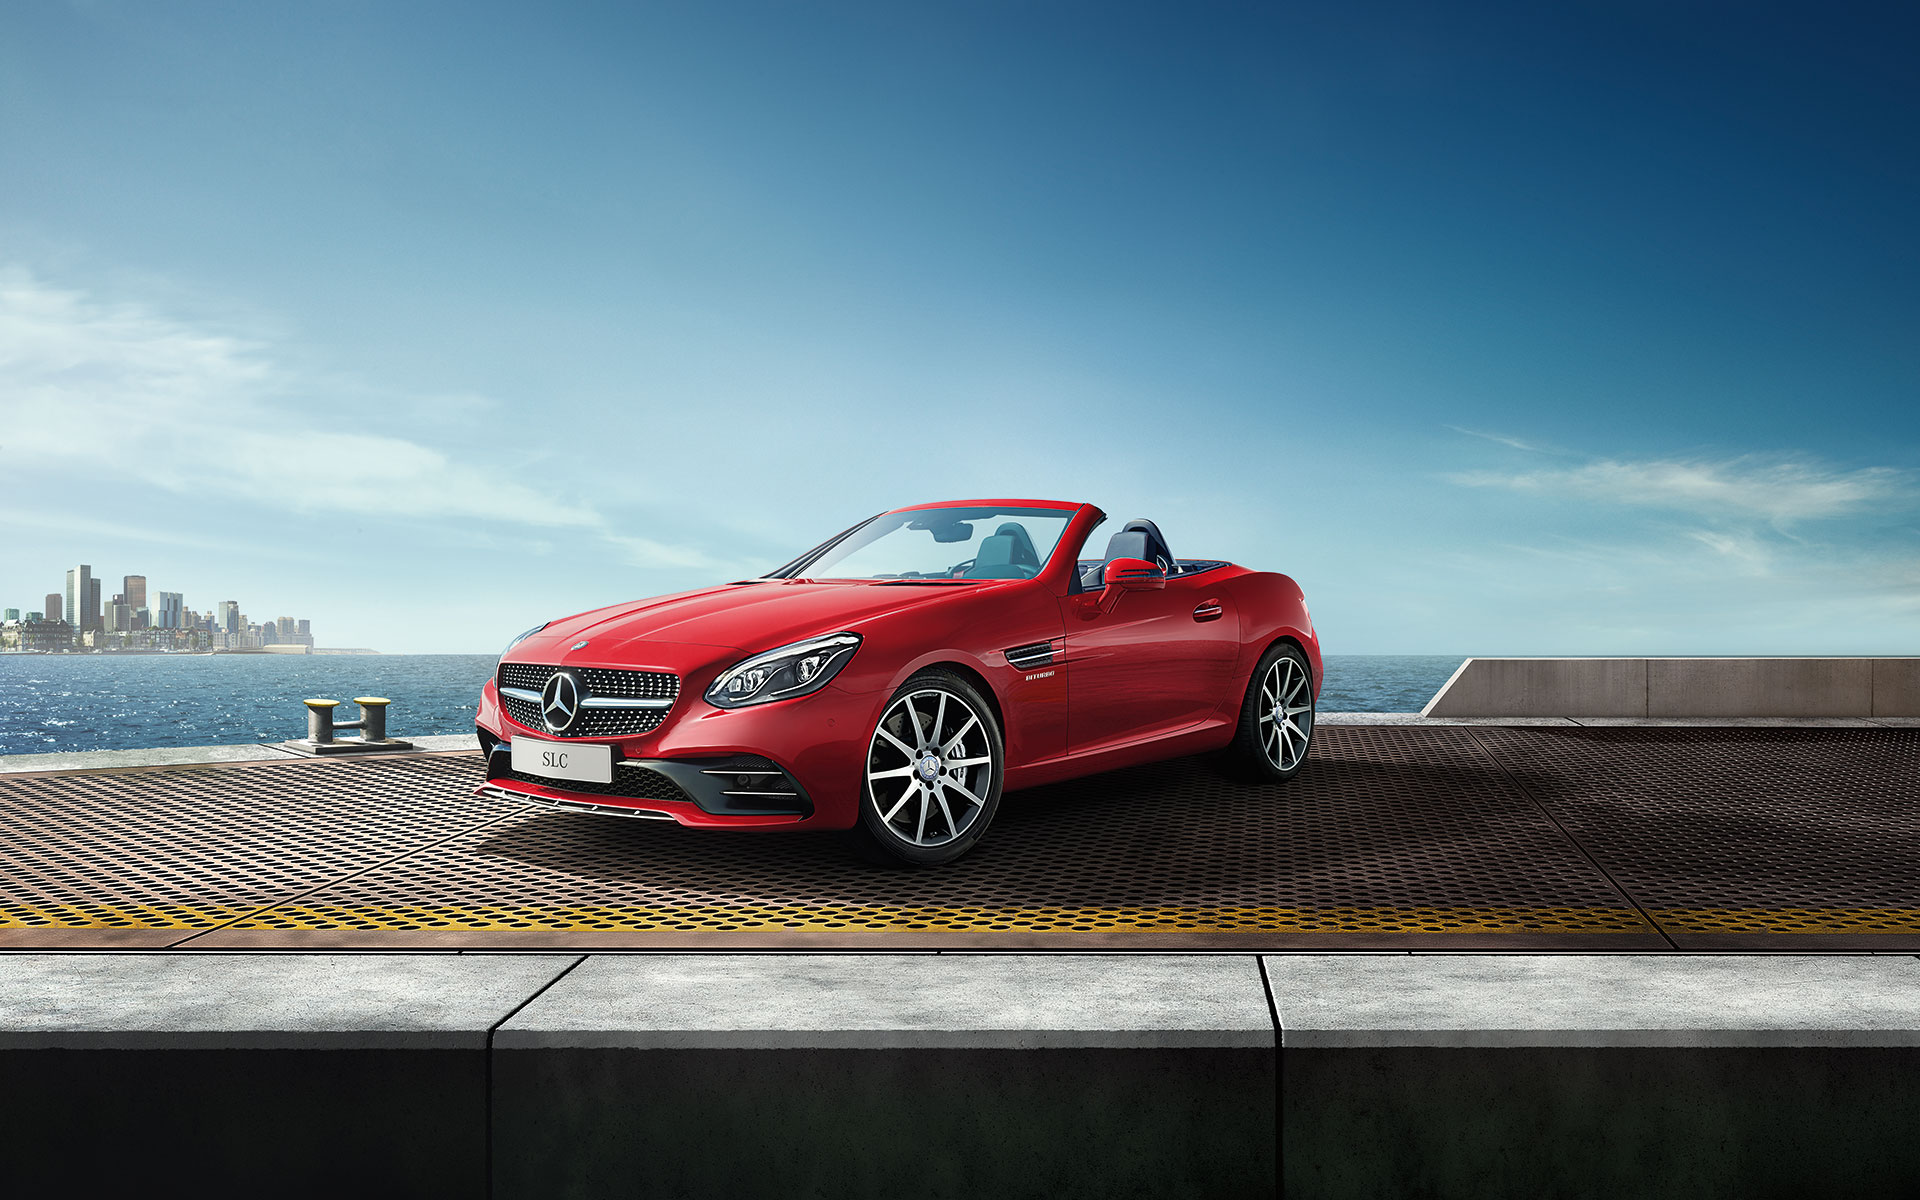 Mercedes Halm SLC